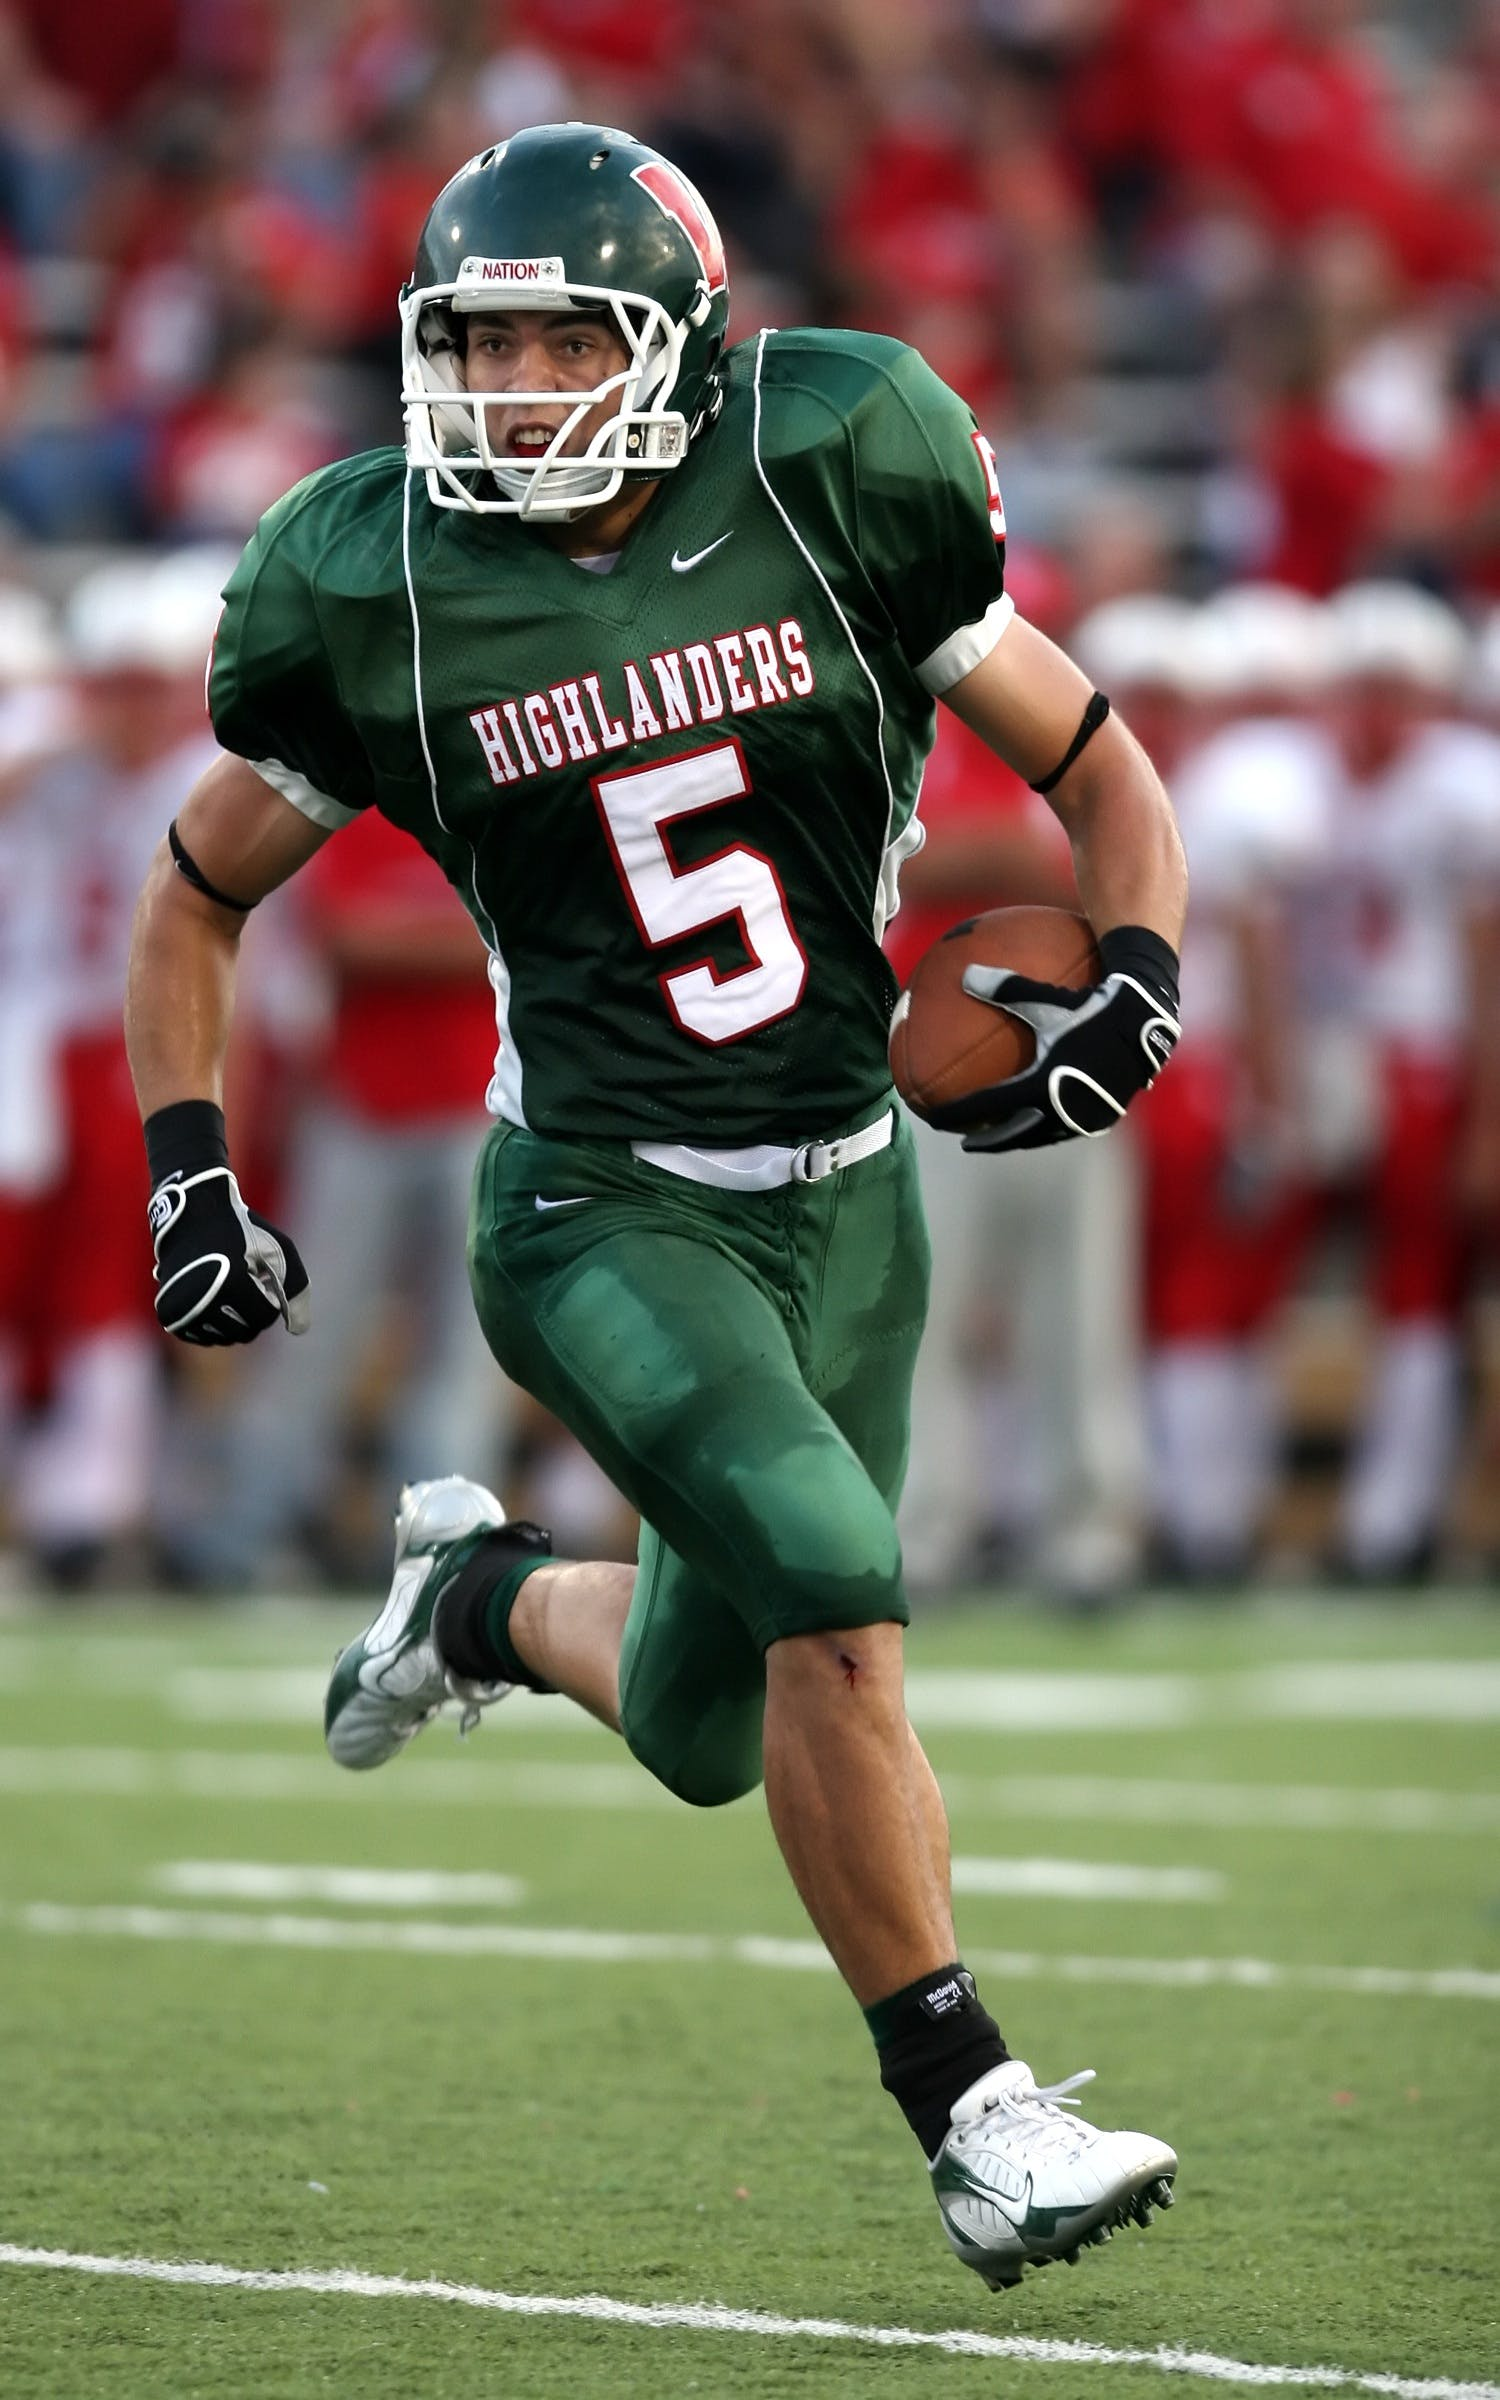 Man Wearing Green American Football Jersey Holding the Ball While Running on the Field